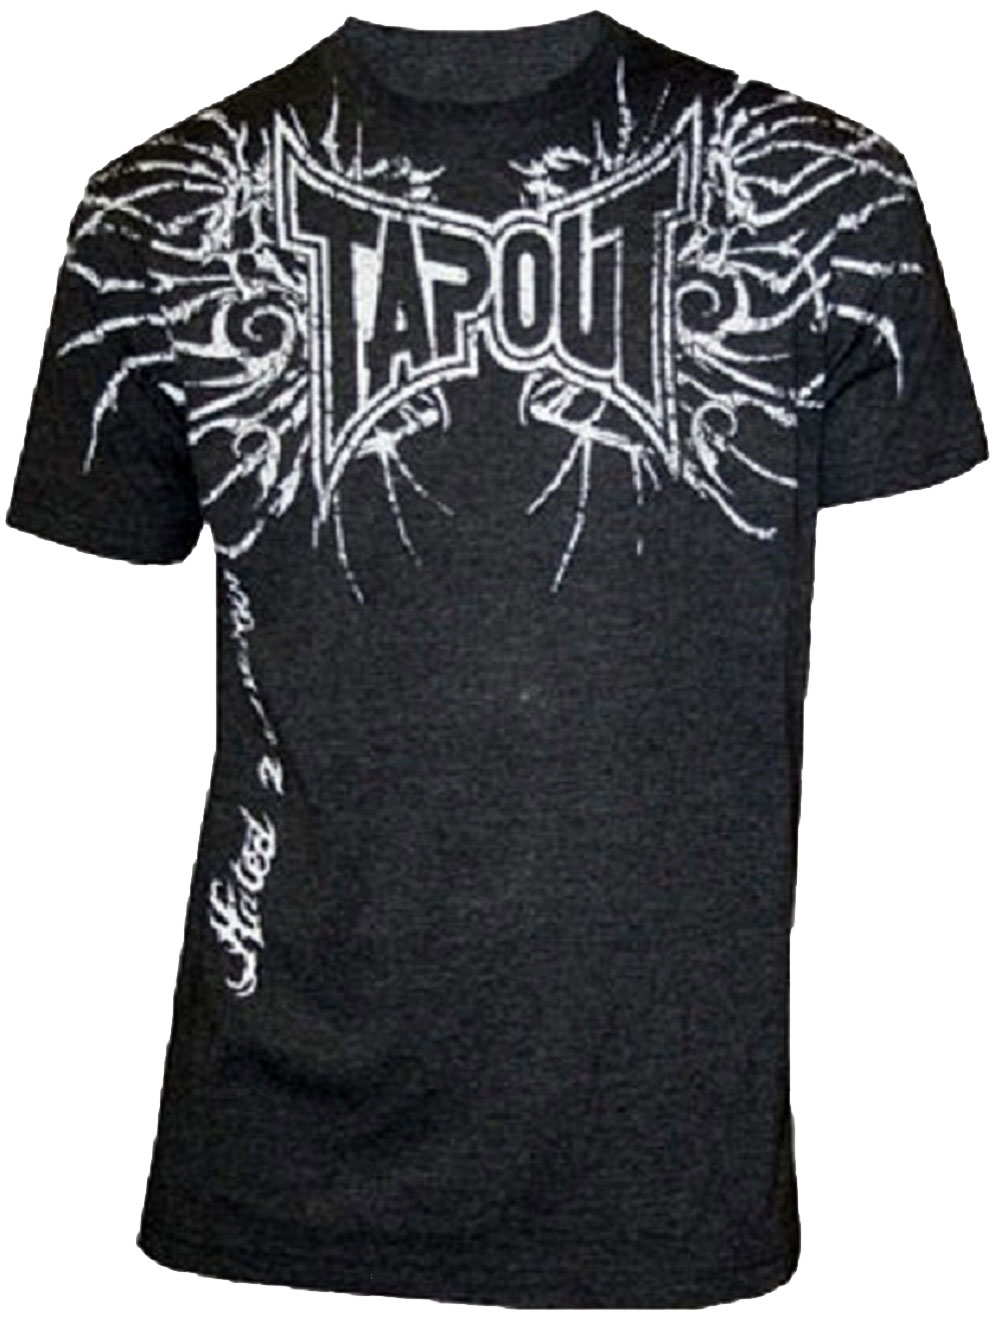 Tapout T-Shirts for Men